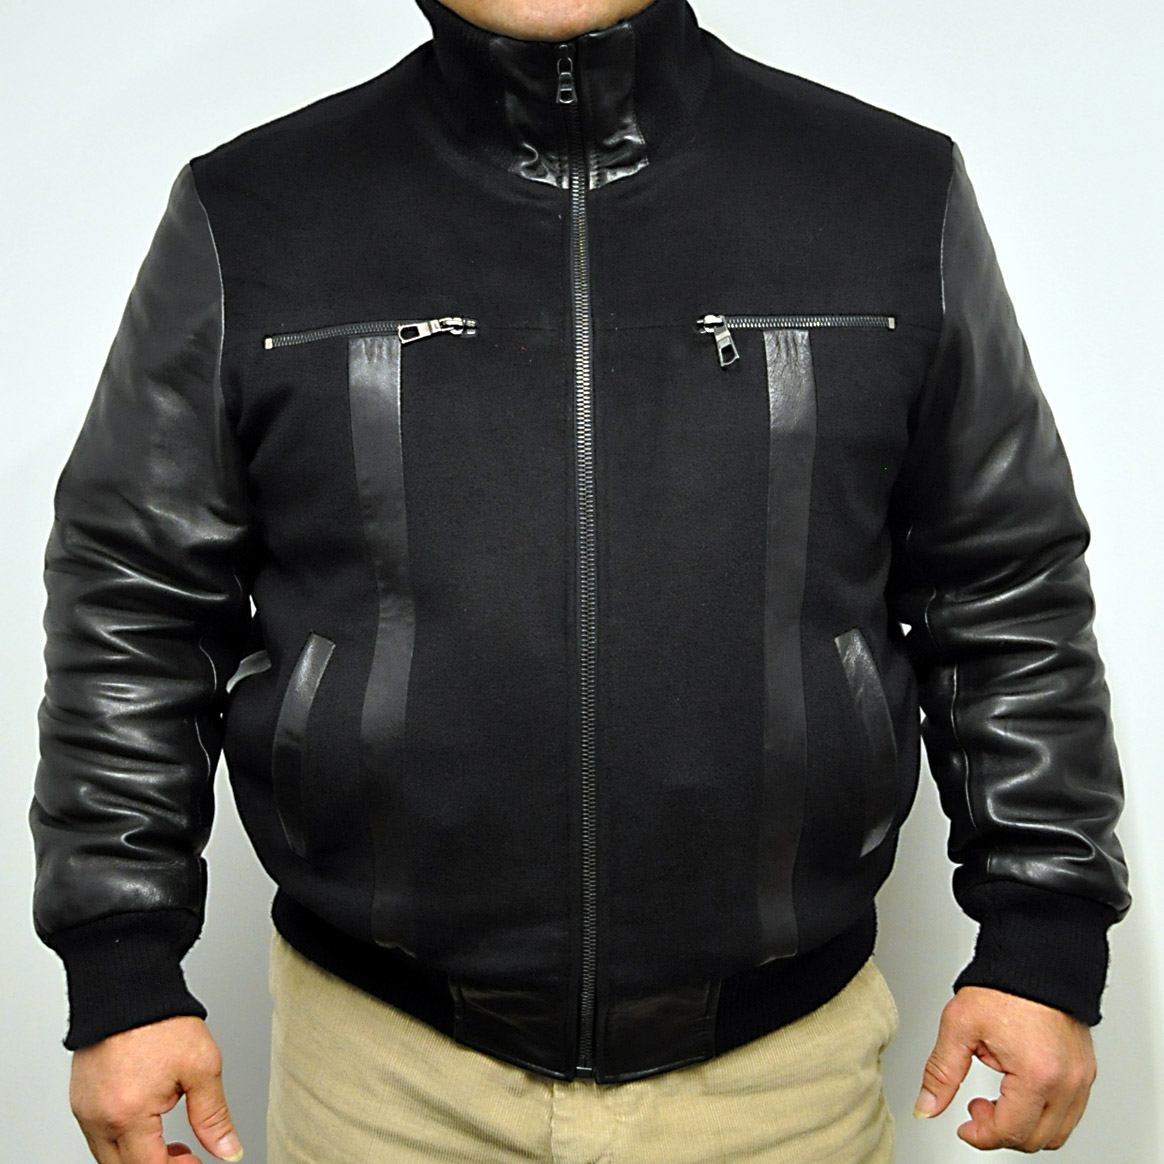 Leather jacket zip repair - Unlike Other Family Owned Tailors 6 Avenue Tailor Also Provides Leather Jacket Repair Zipper Repair Sleeve Shortening And Rip Repairs Are Among Their